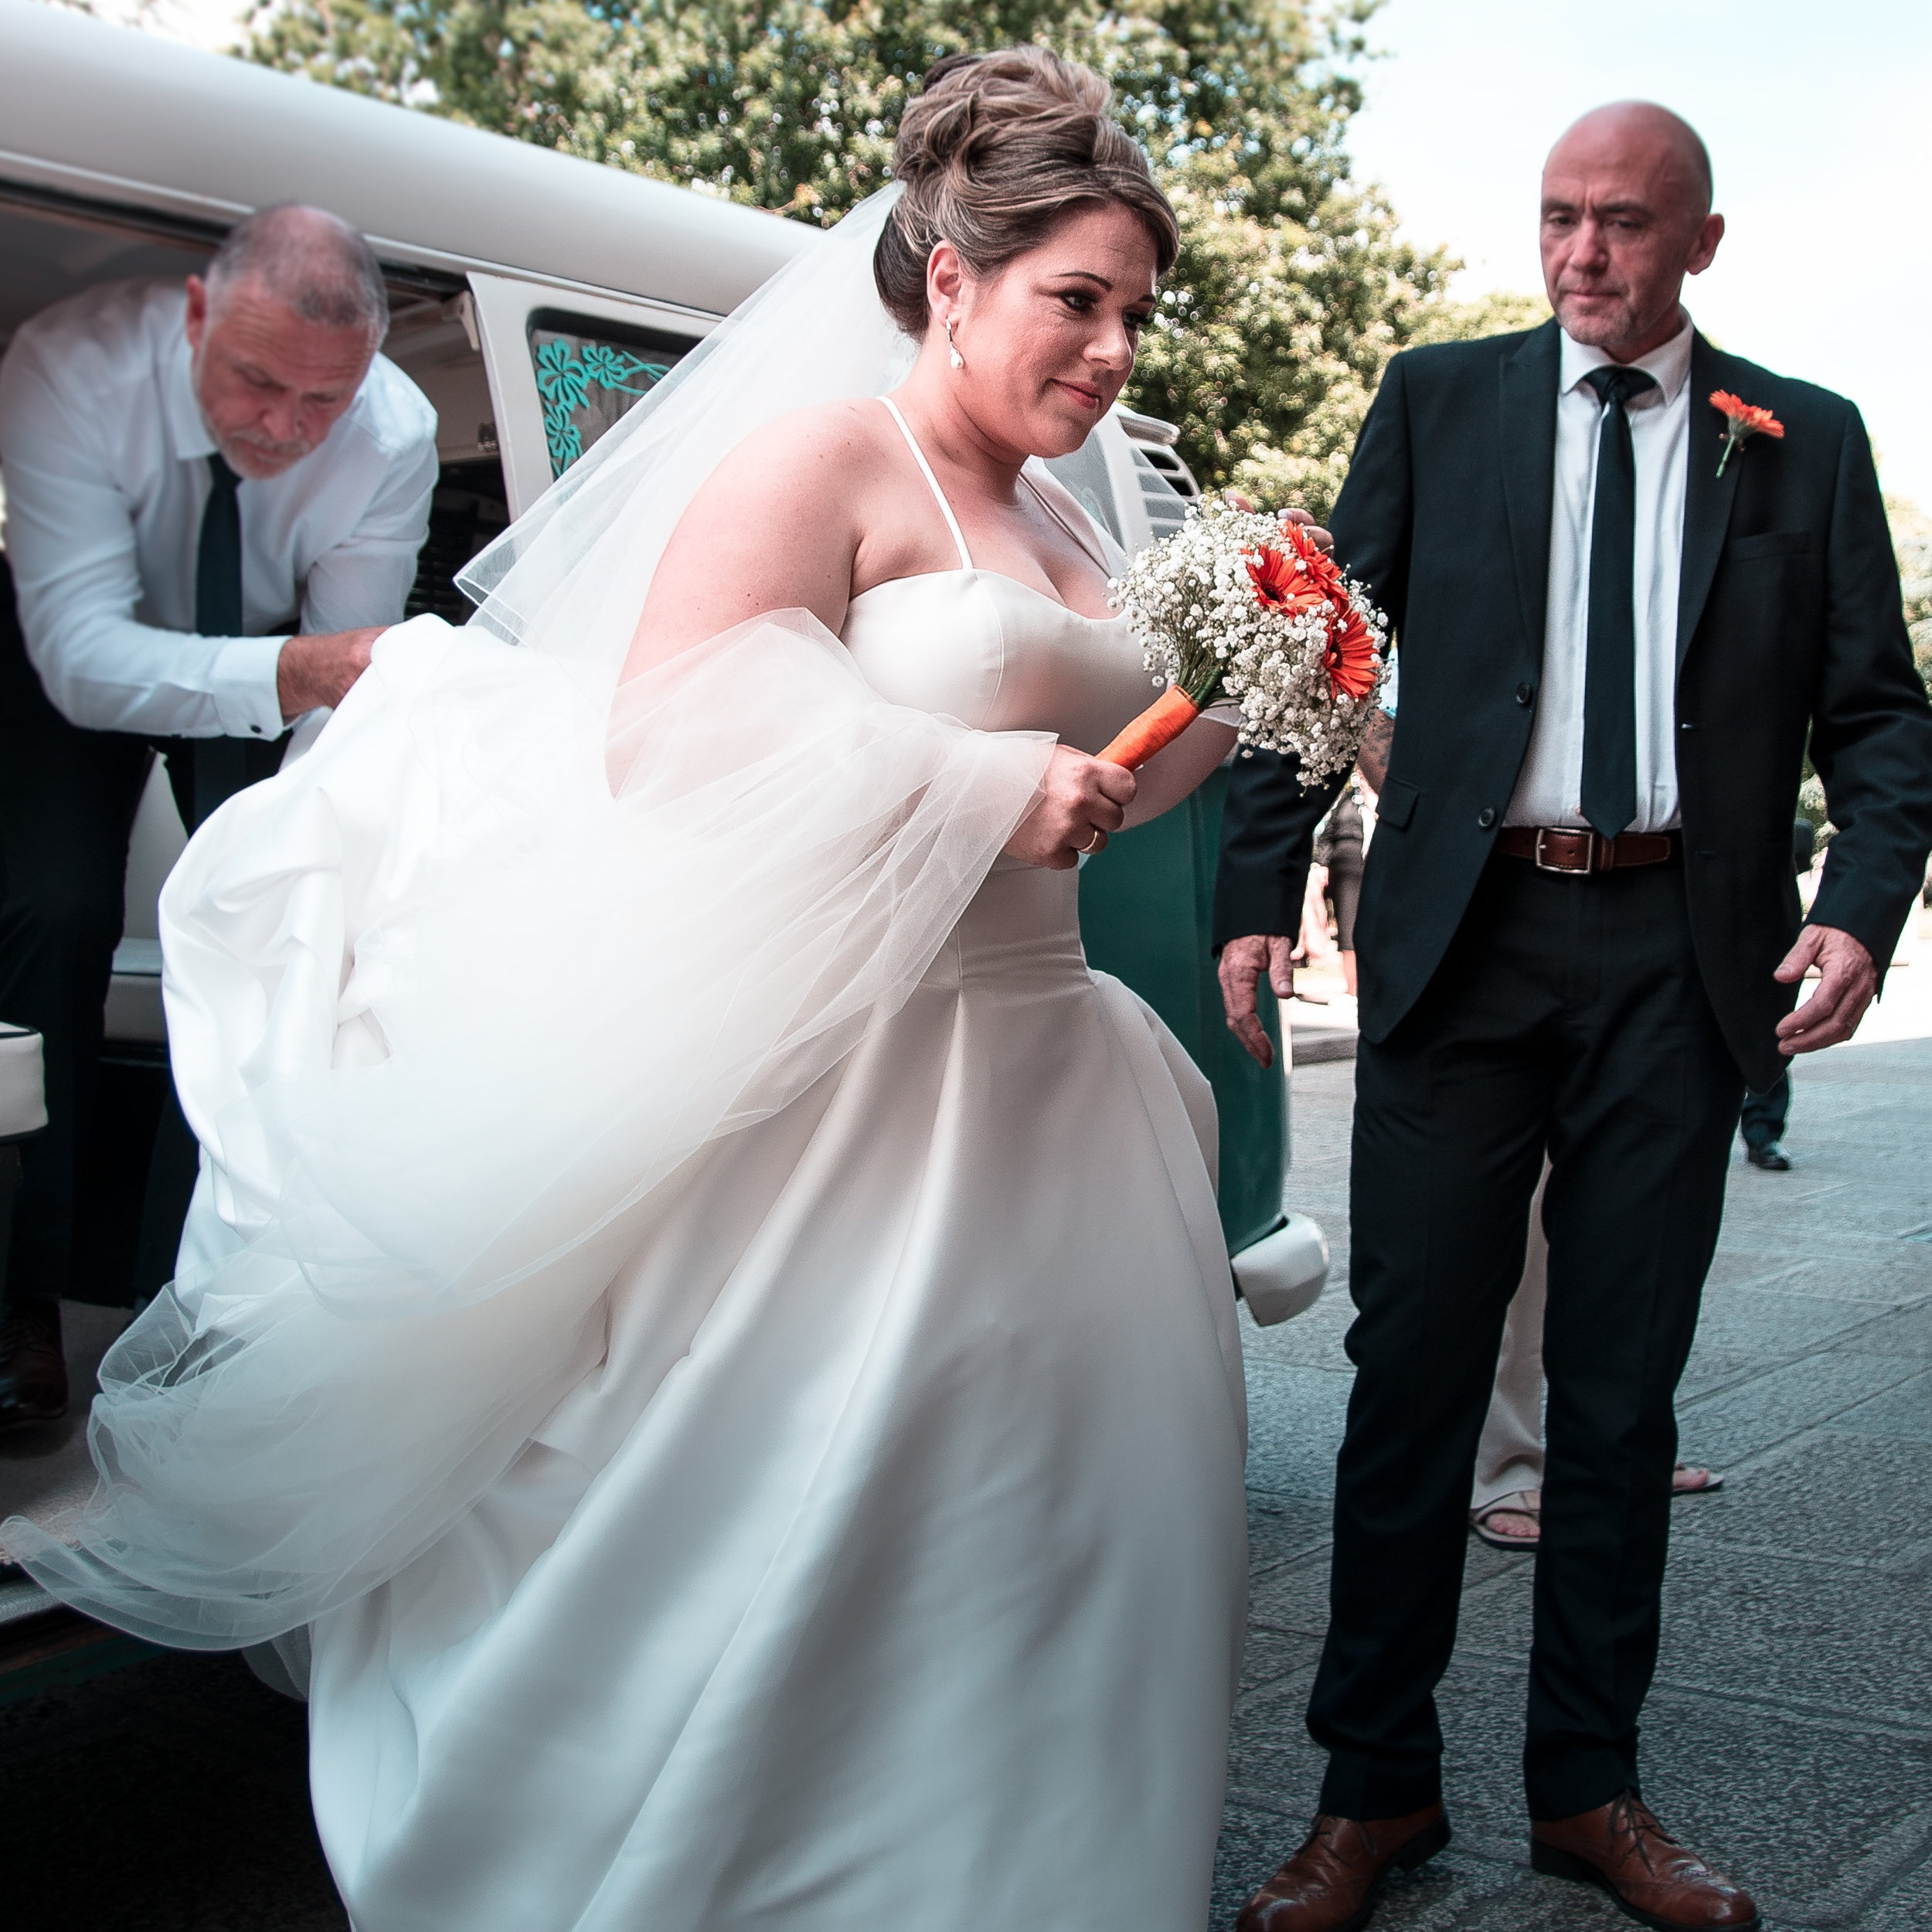 Half Day: £550 - With this package I will be with you for around 4 hours, this can be in the morning, afternoon or evening the choice is yours. You will receive a professionally printed photo book containing around 25 of the best photographs from the day, a USB stick with all of your wedding photographs and for a month after the wedding you an your guests will have access to a private online gallery where you can download all of your photos. This package requires a £100 non refundable deposit in order to secure your date, you can then pay the rest at anytime between the day you book and your wedding day.Add the drone to either package for £250.